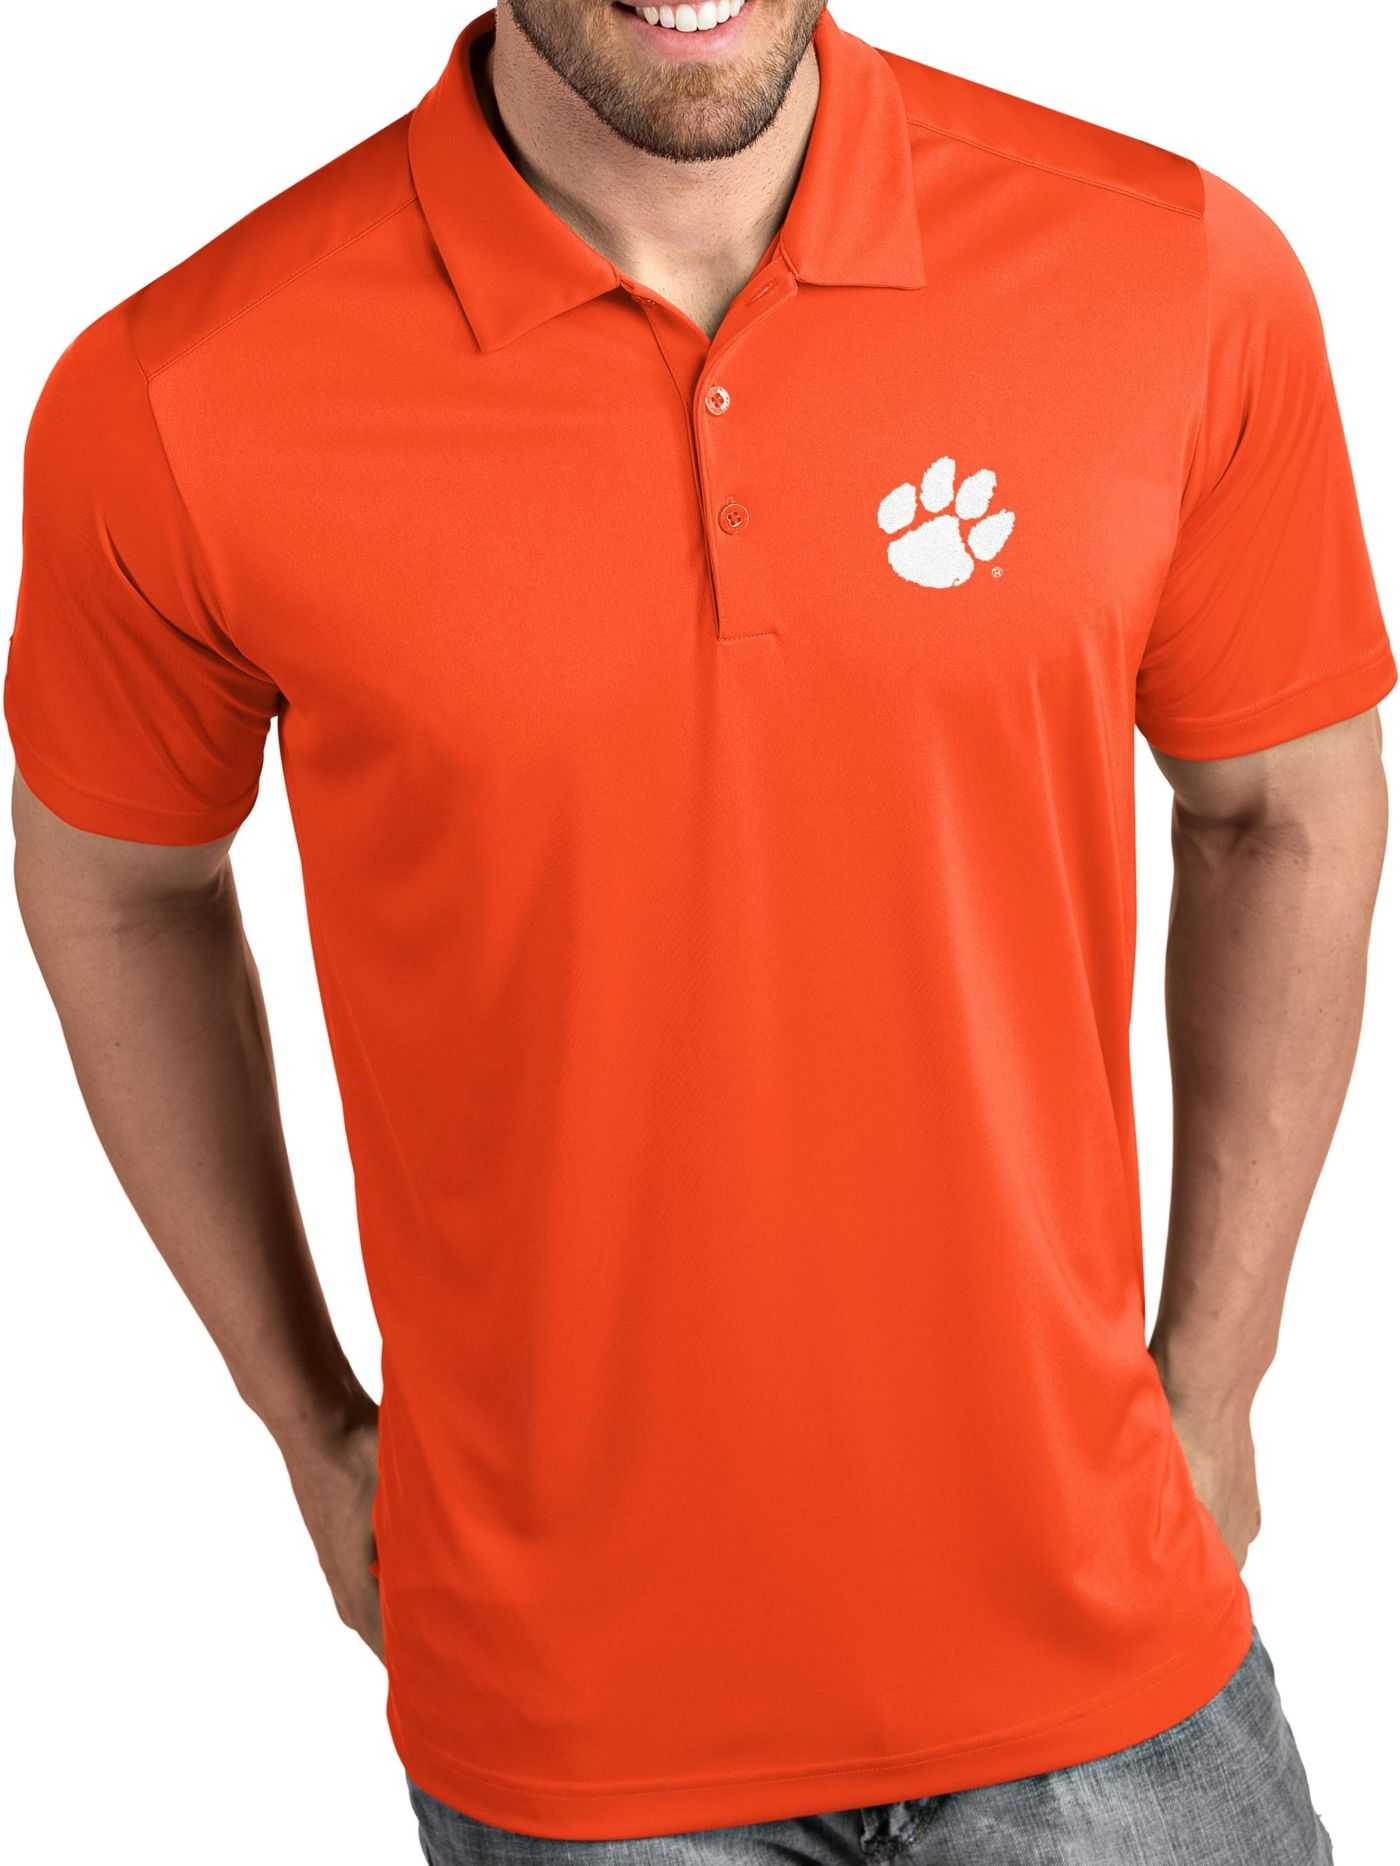 Antigua Men's Clemson Tigers Orange Tribute Performance Polo